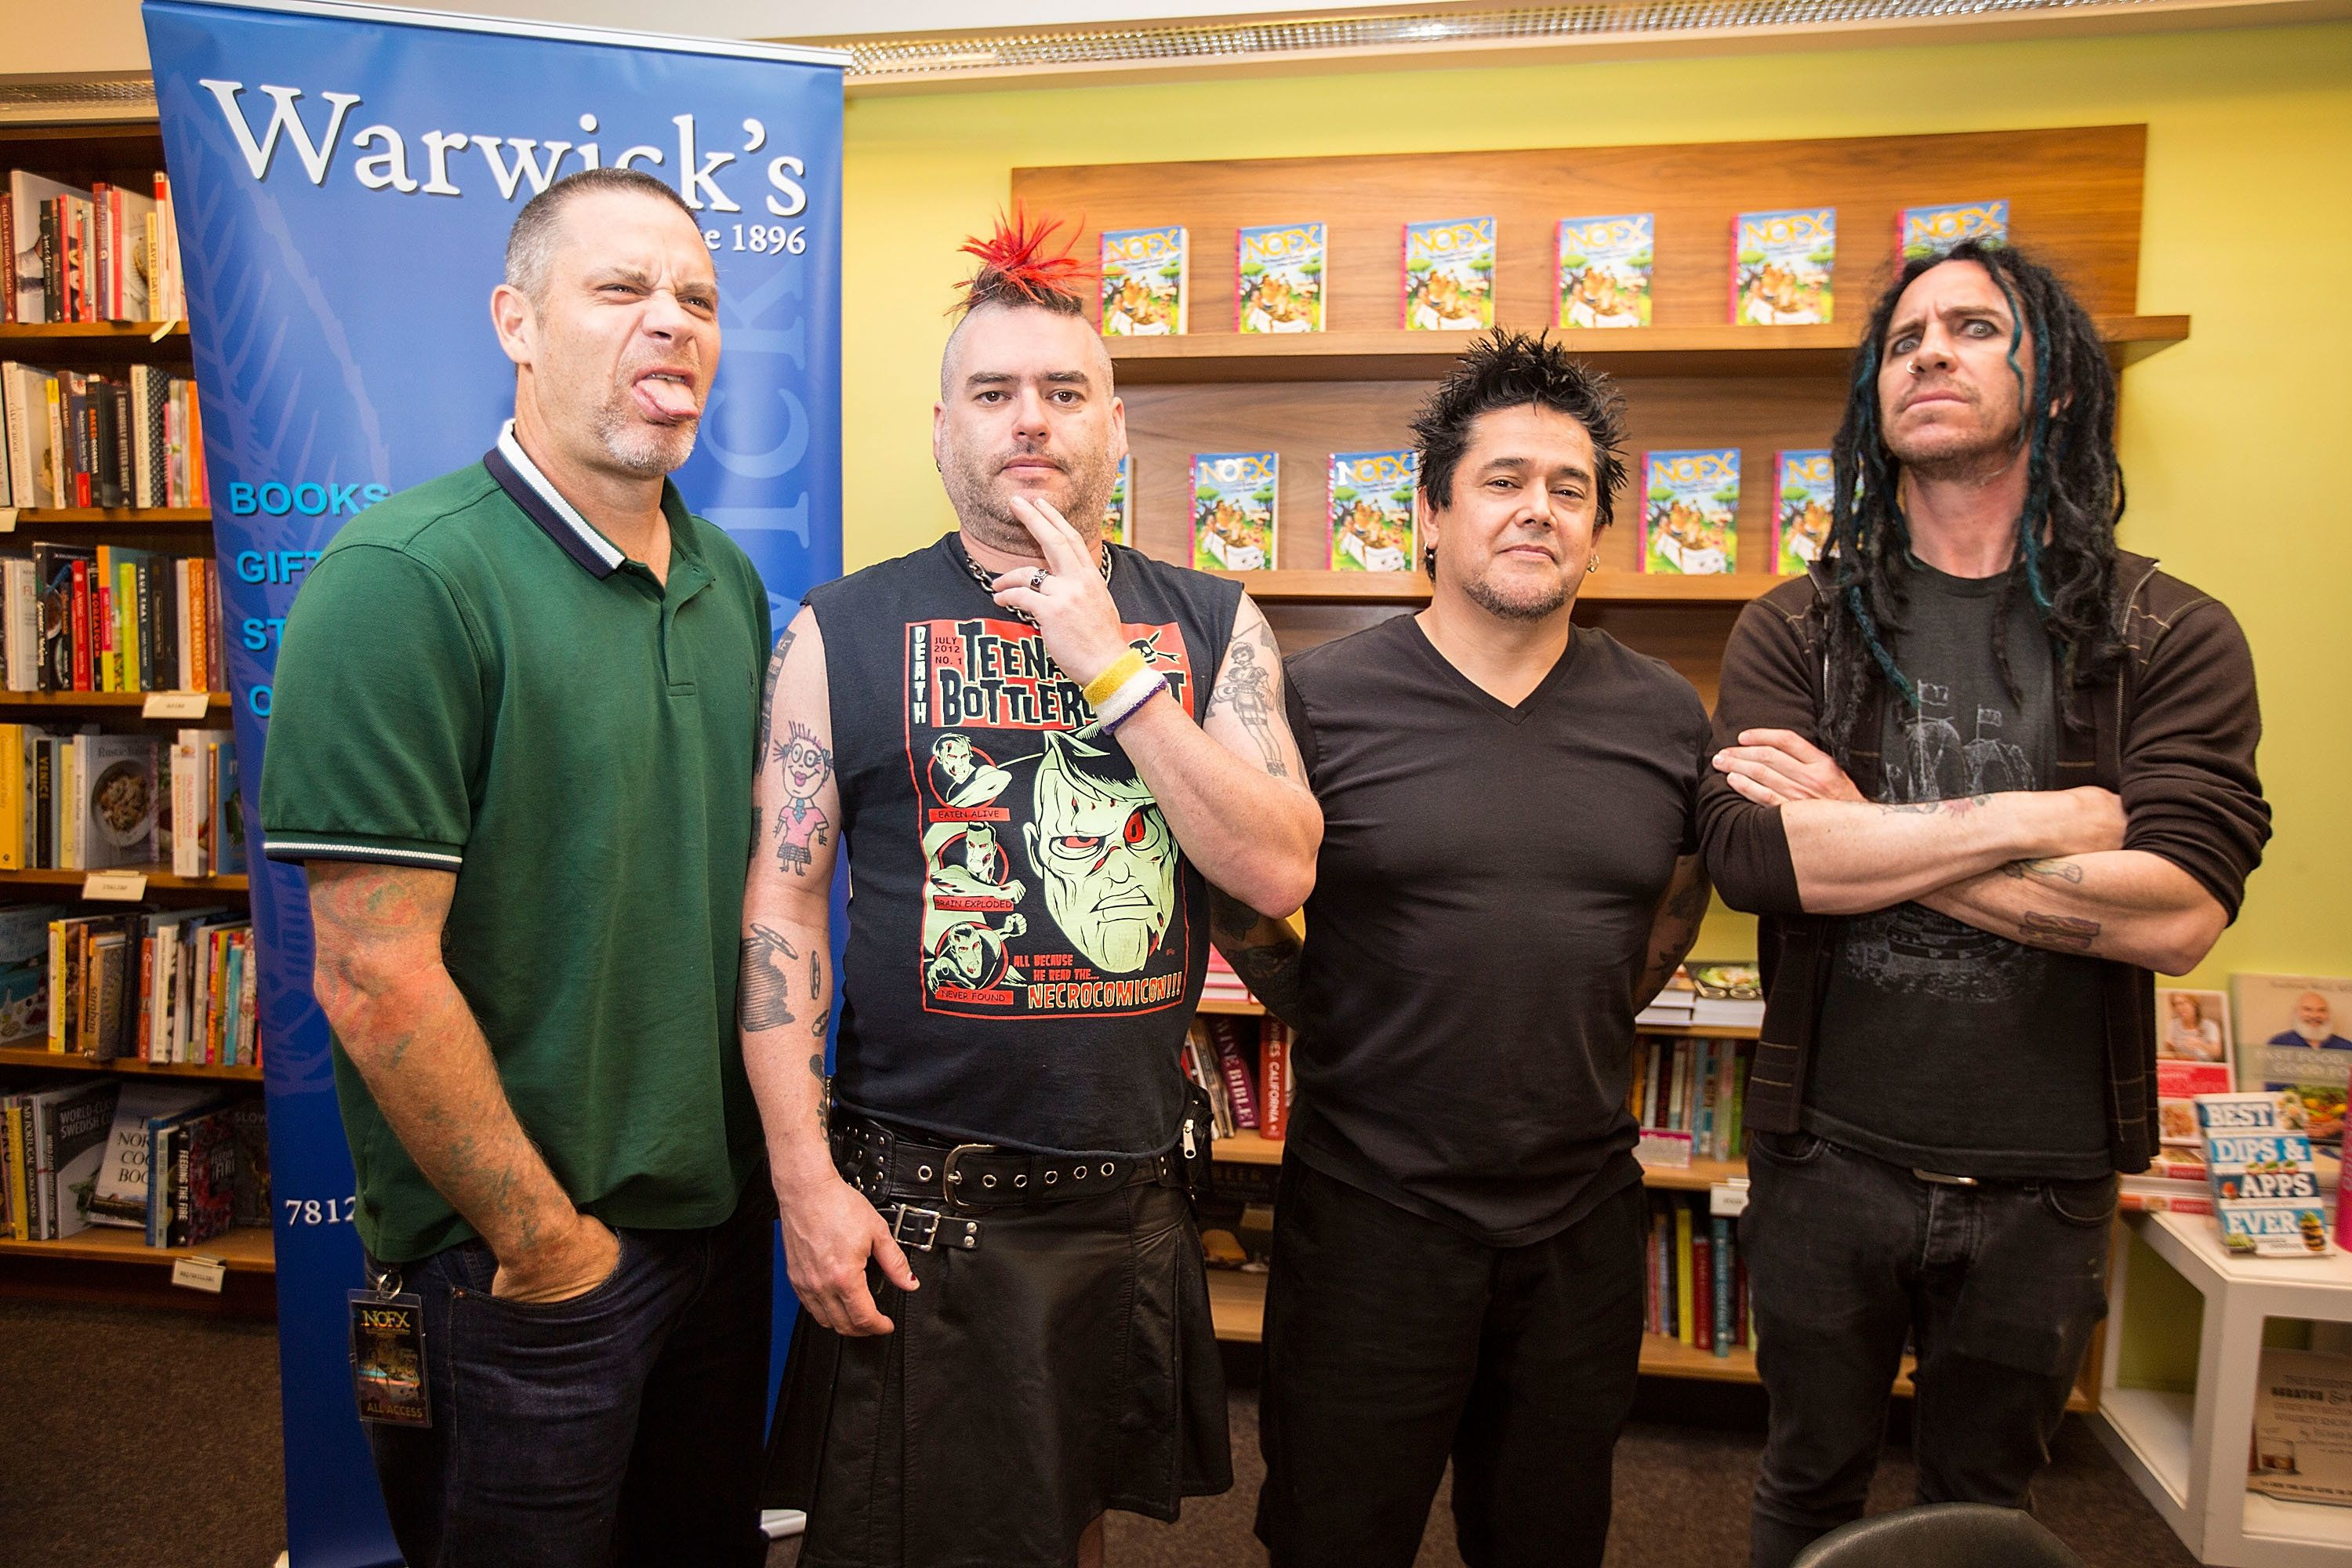 LA JOLLA, CA - APRIL 14:  (L-R) Musicians Erik Sandin, Fat Mike, El Hefe, and Eric Melvin of NOFX pose at a signing for their book 'The Hepatitis Bathtub and Other Stories' at Warwick's on April 14, 2016 in La Jolla, California.  (Photo by Daniel Knighton/Getty Images)